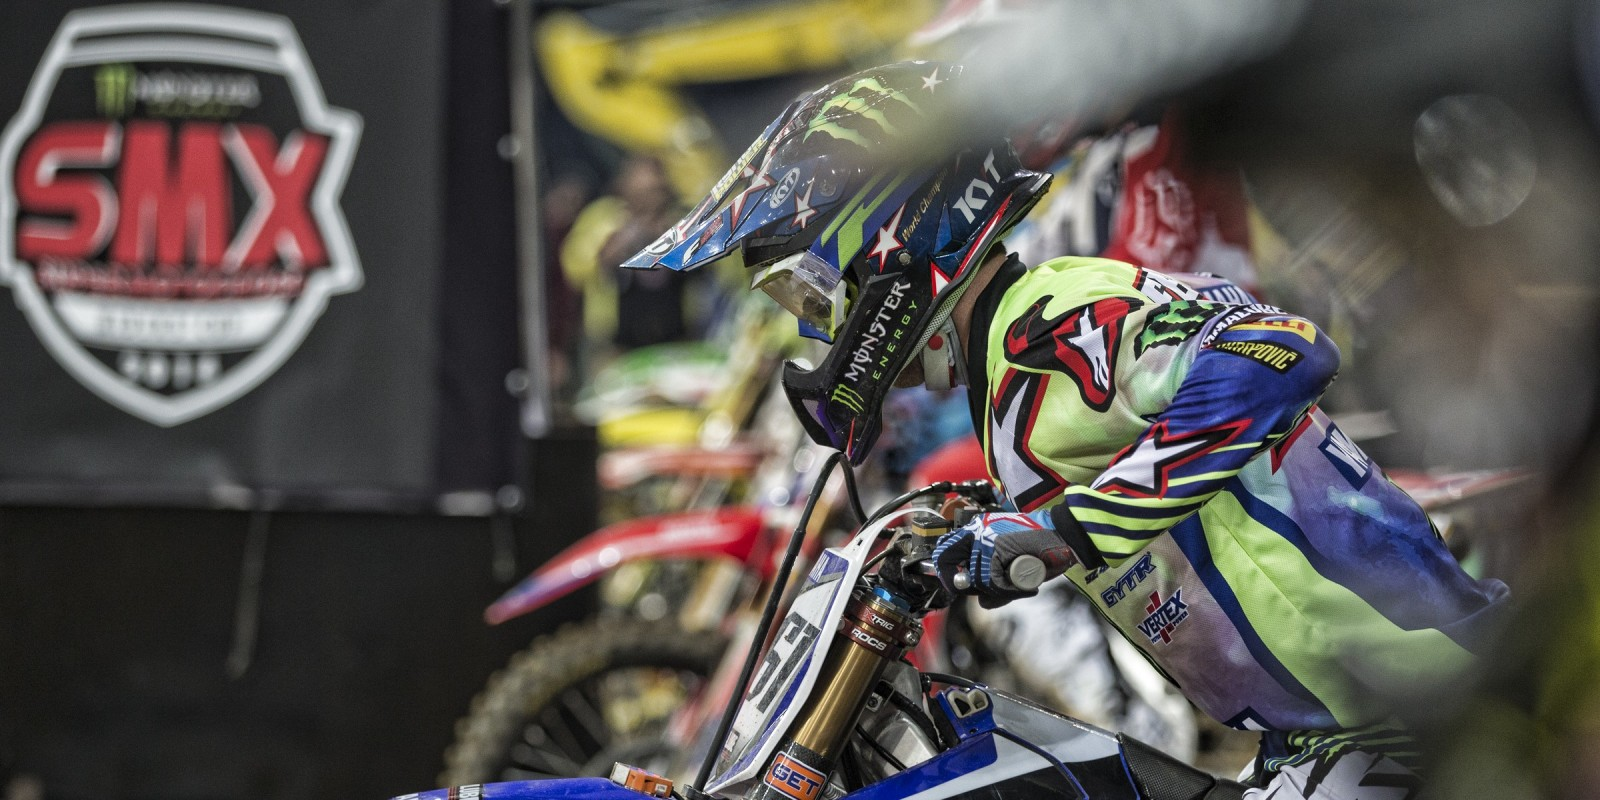 Supermotocross at the Veltins Arena in Germany.